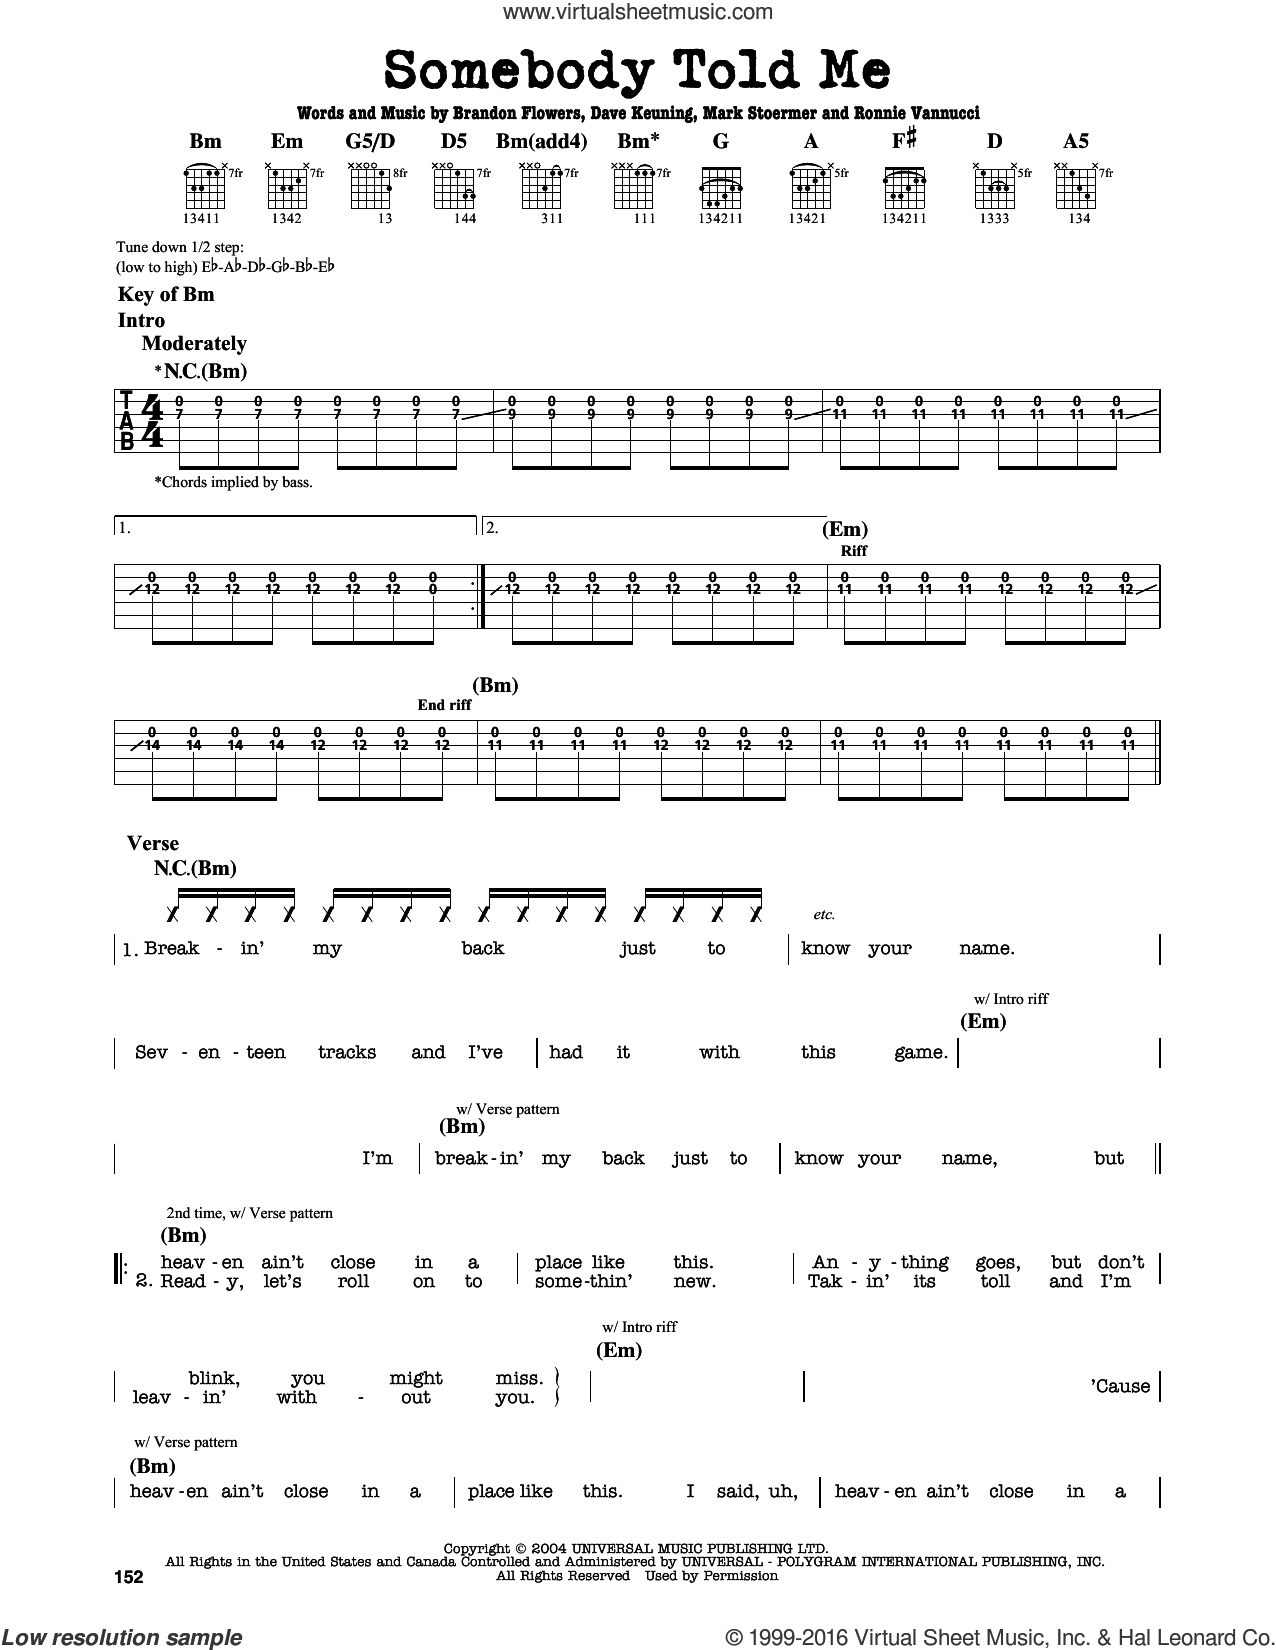 Somebody Told Me sheet music for guitar solo (lead sheet) by Ronnie Vannucci, The Killers, Brandon Flowers, Dave Keuning and Mark Stoermer. Score Image Preview.